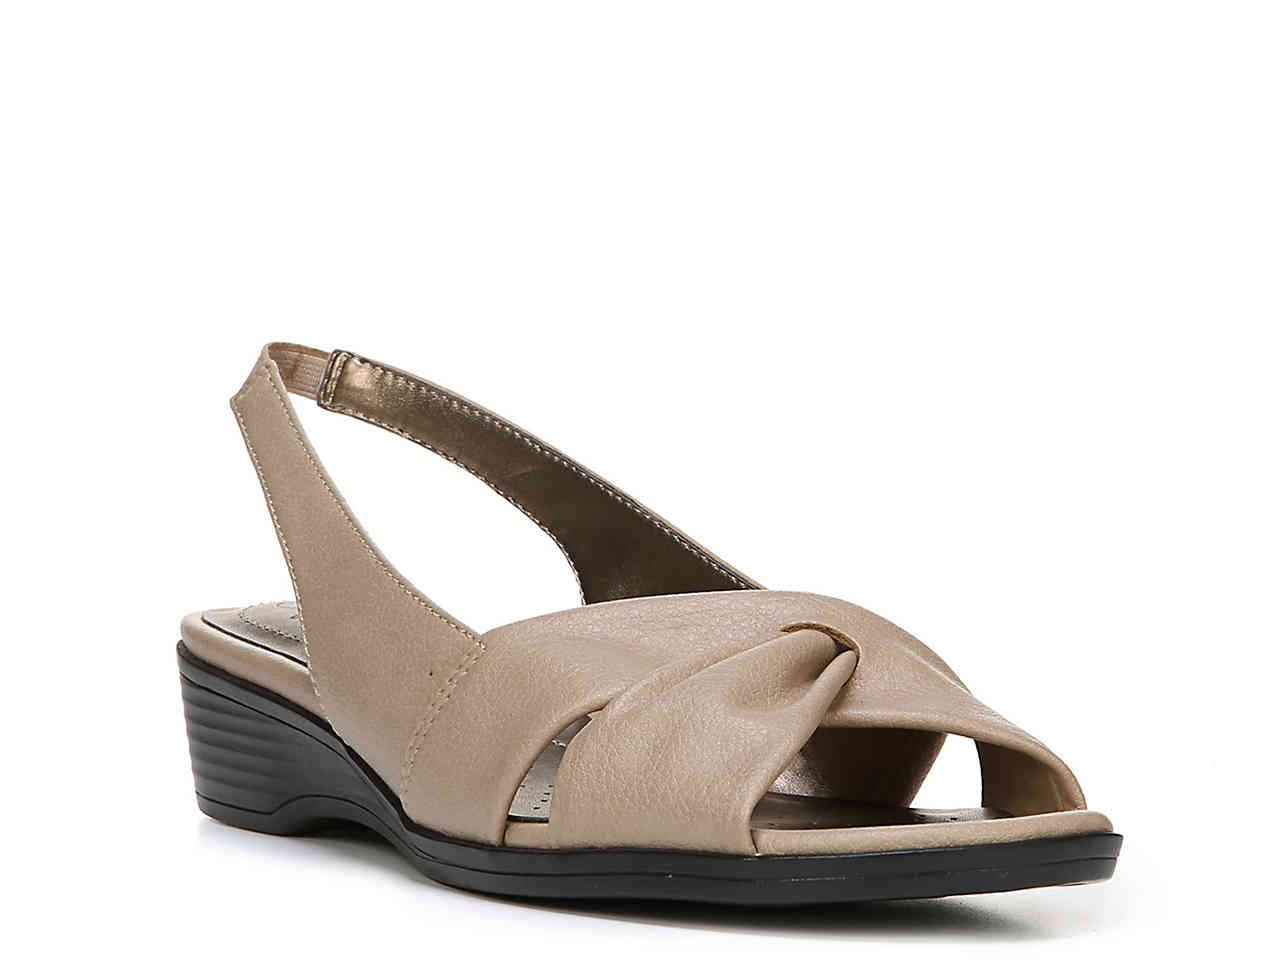 LIFESTRIDE SHOES Mimosa 2 Wedge Sandal gmdBf